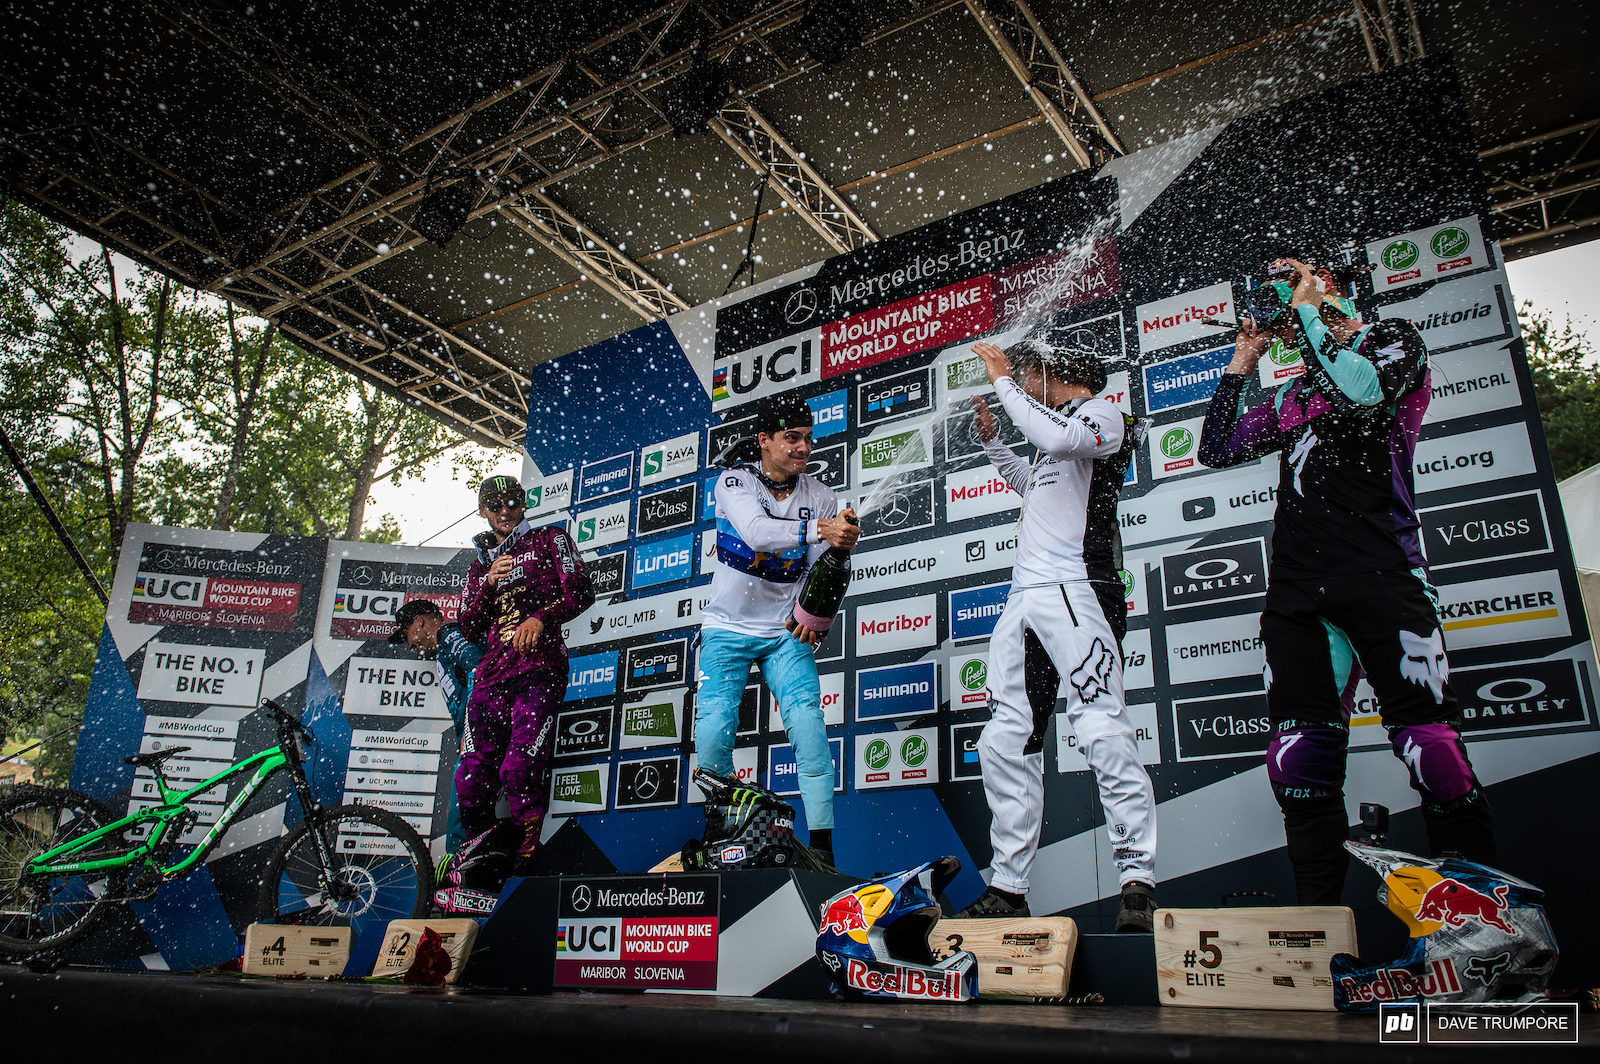 It only rained champagne for once at a World Cup